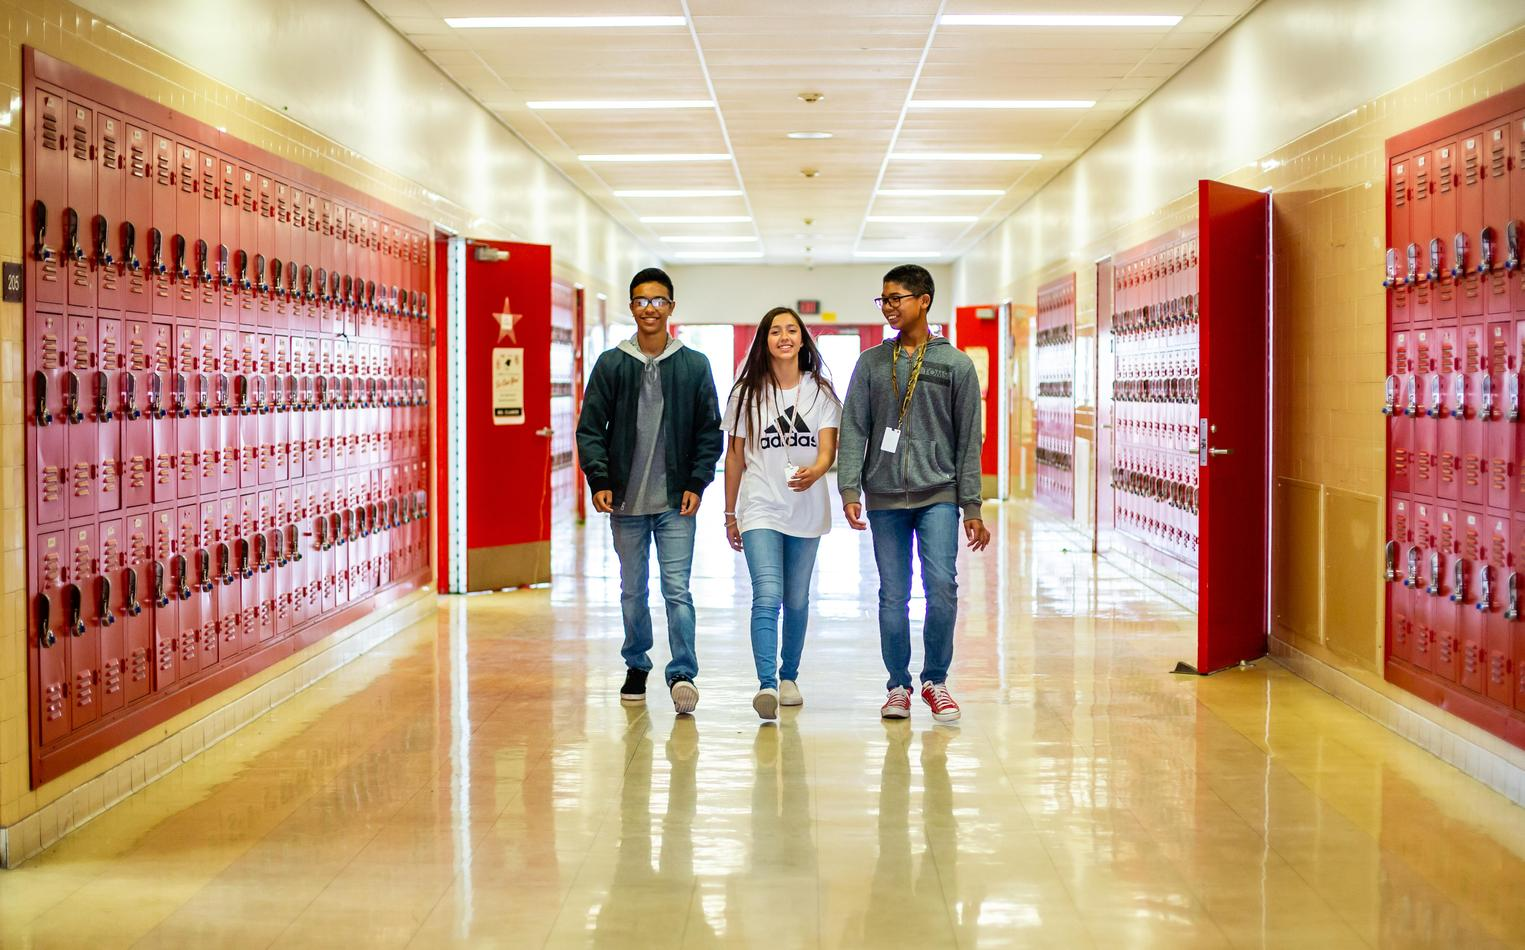 Three friends walking in hallway with rows of lockers.